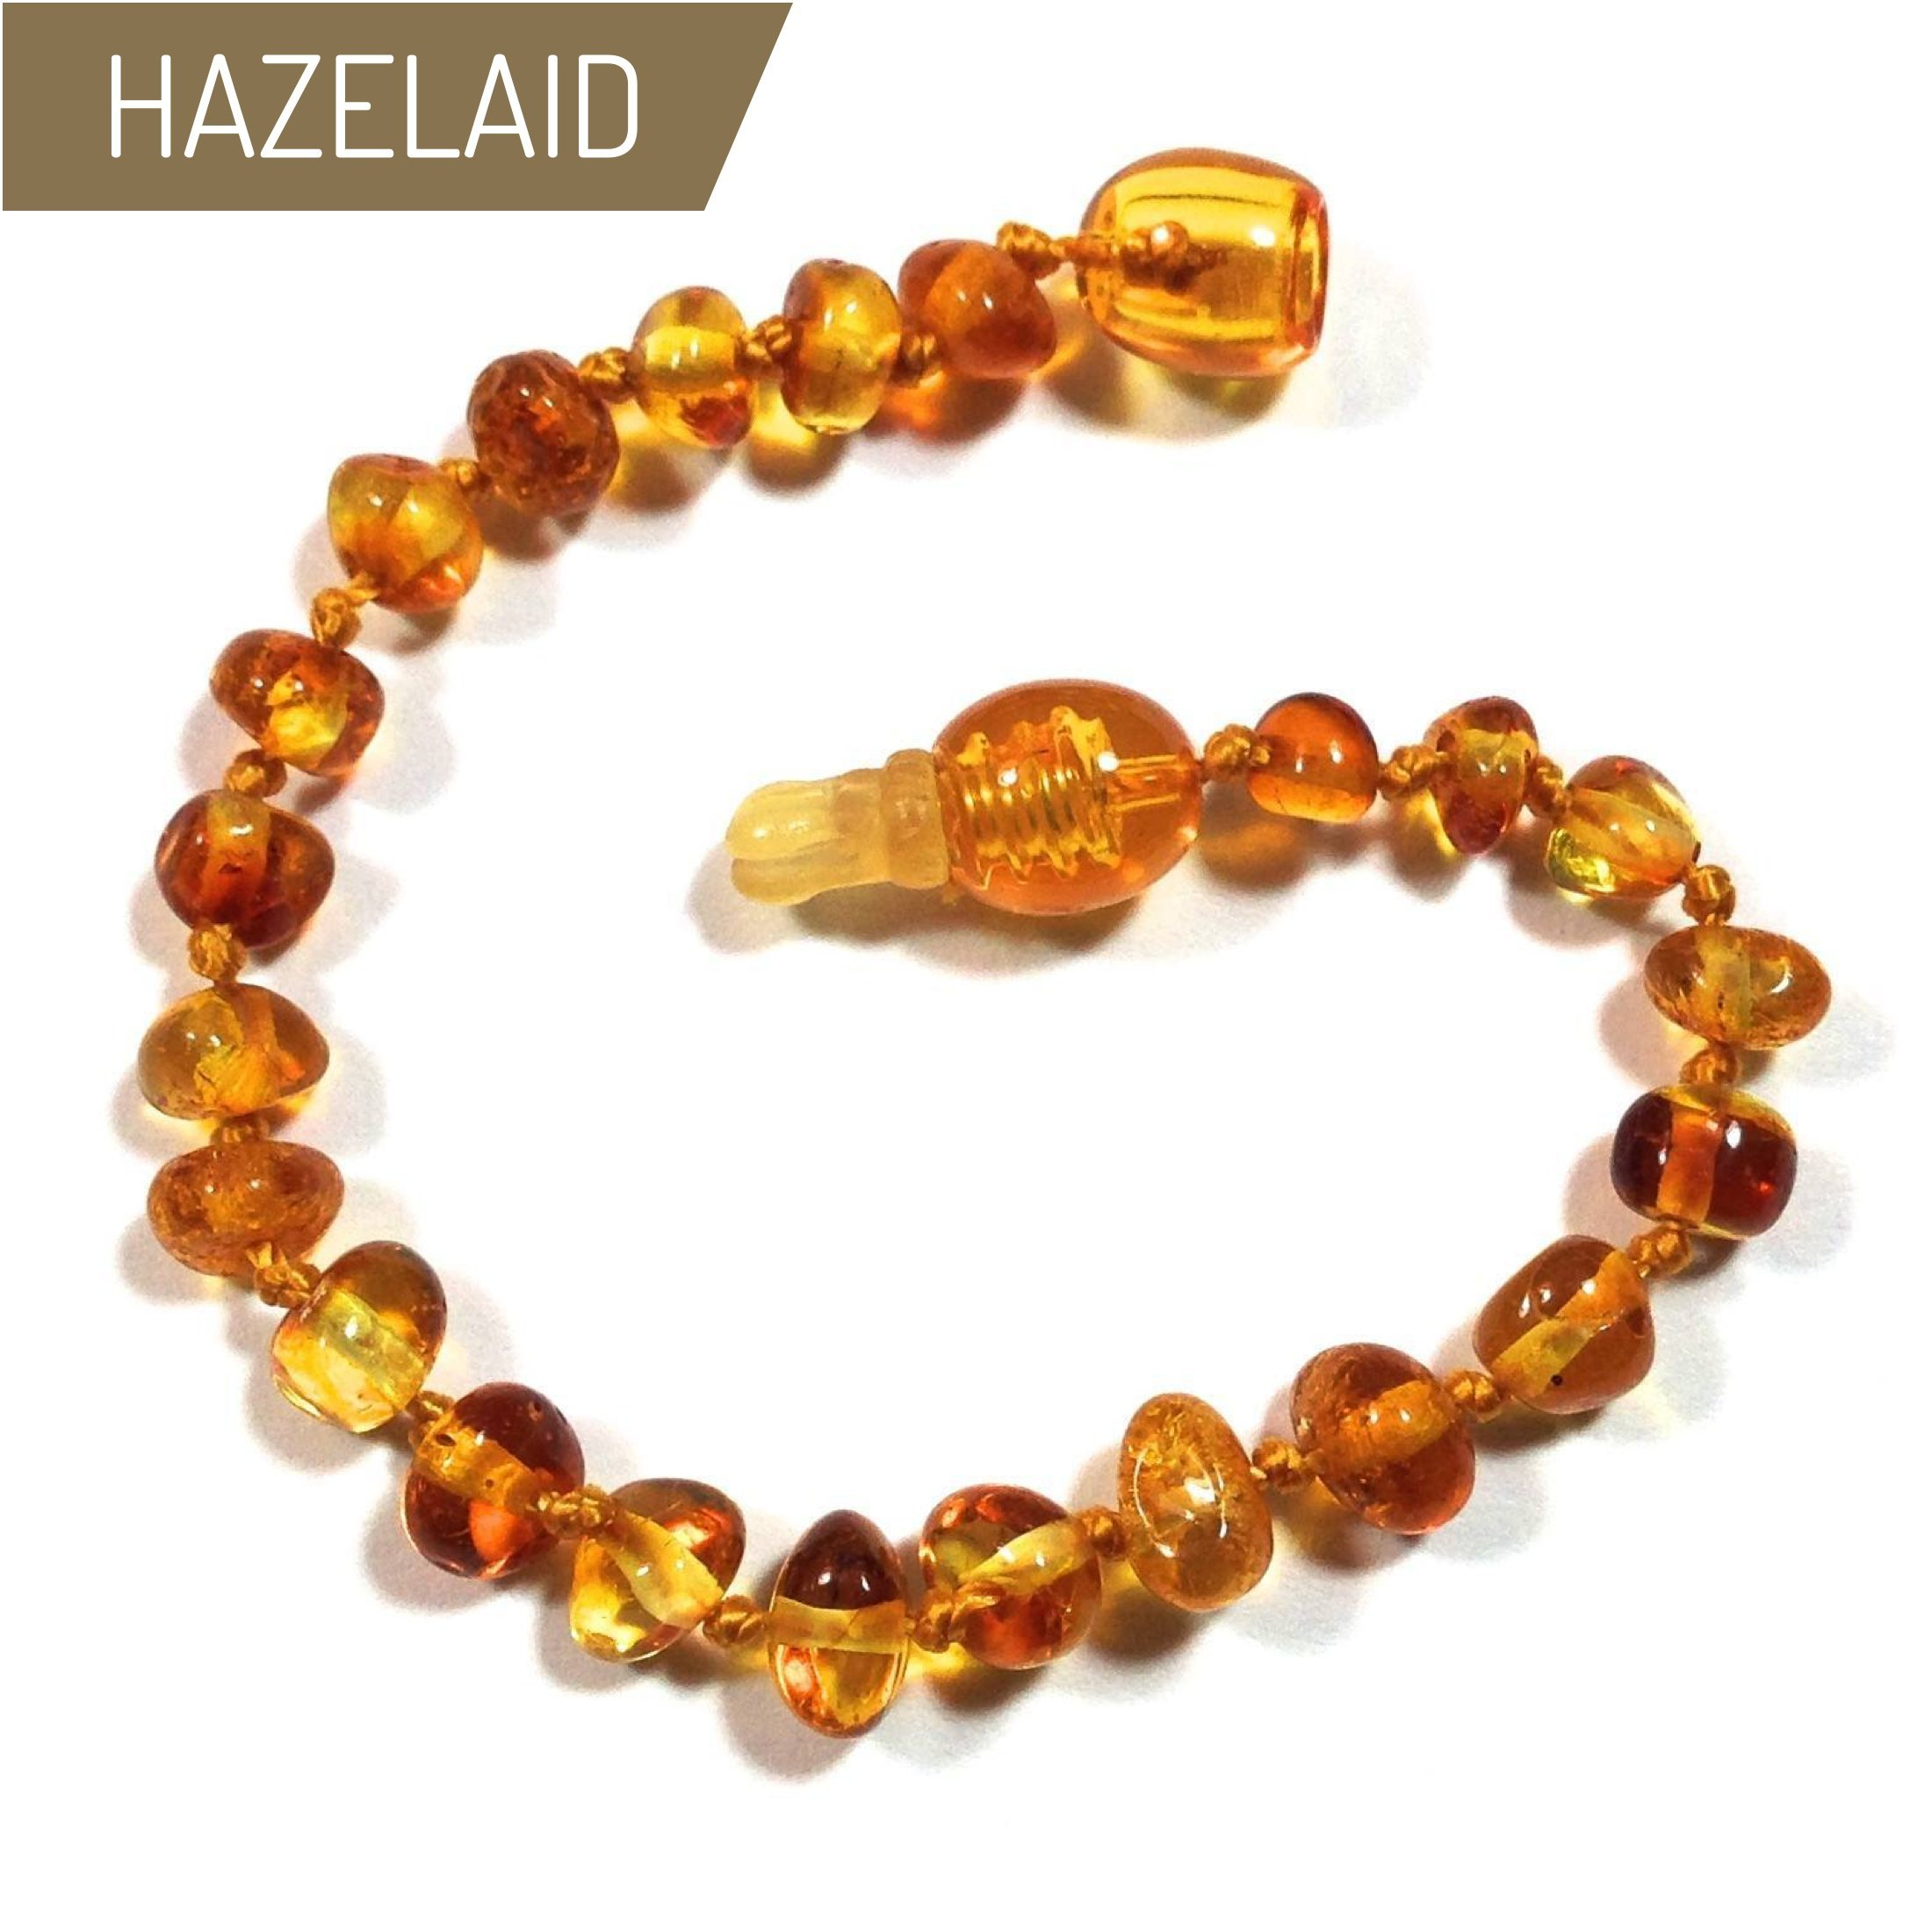 Hazelaid (TM) 5.5'' Pop-Clasp Baltic Amber Honey Bracelet